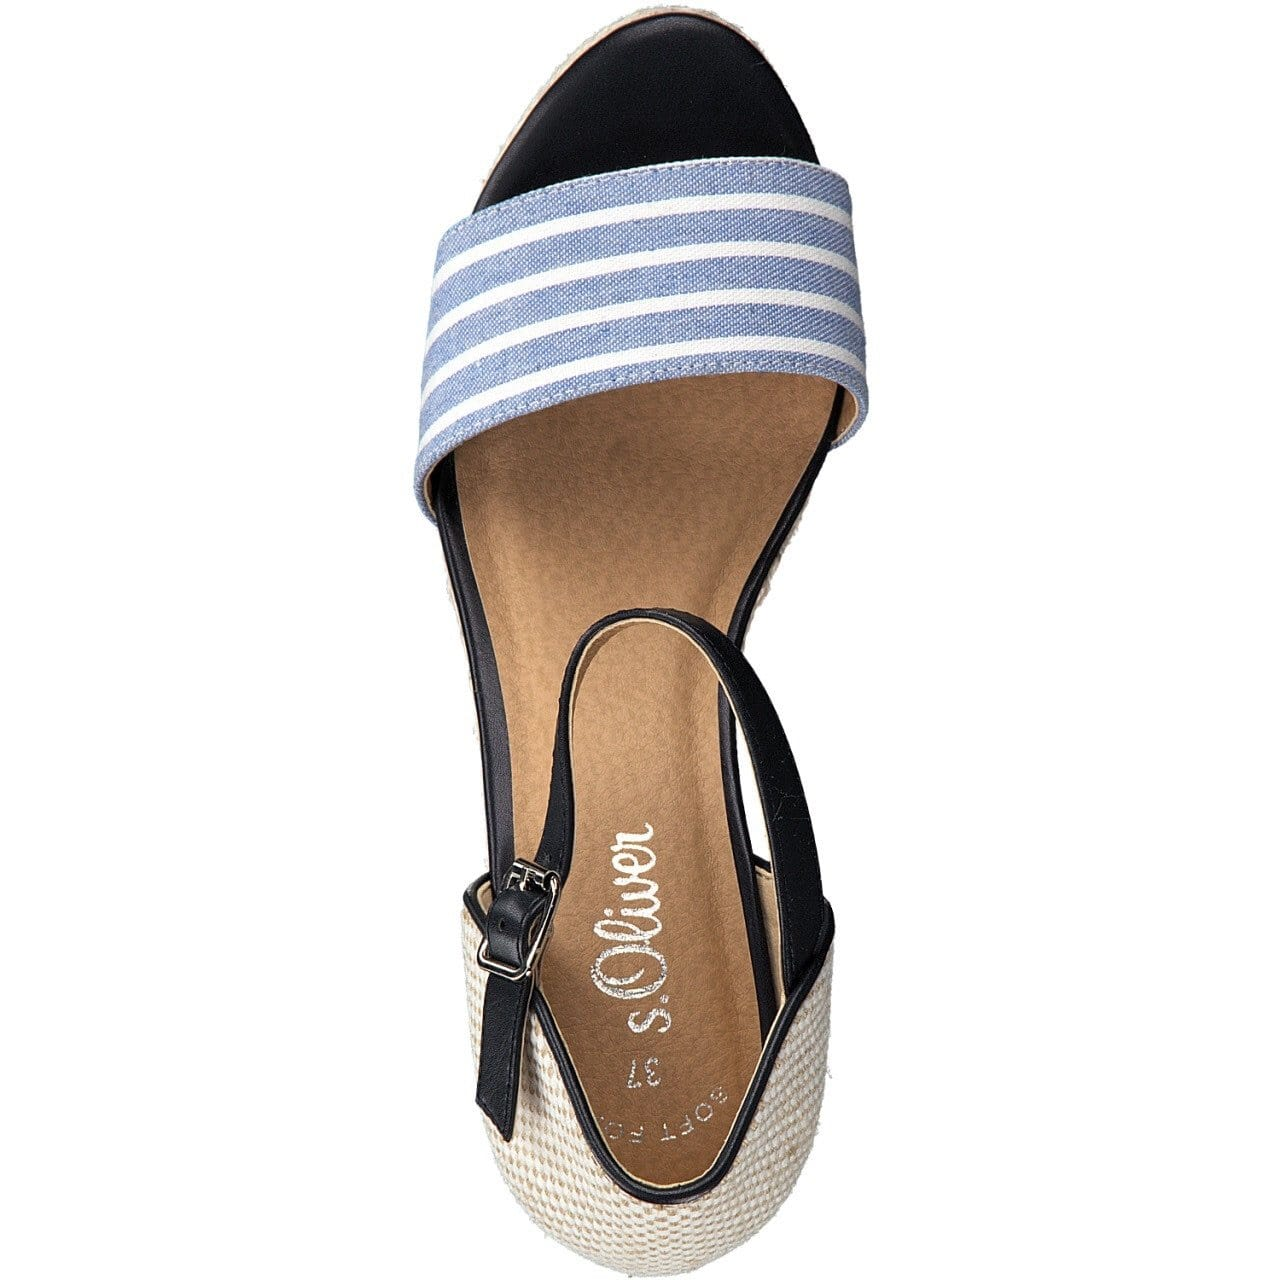 098a4171ef6f48 ... S.Oliver Ladies Navy Combination Wedge Sandal 28315-22 891 - Finn  Footwear